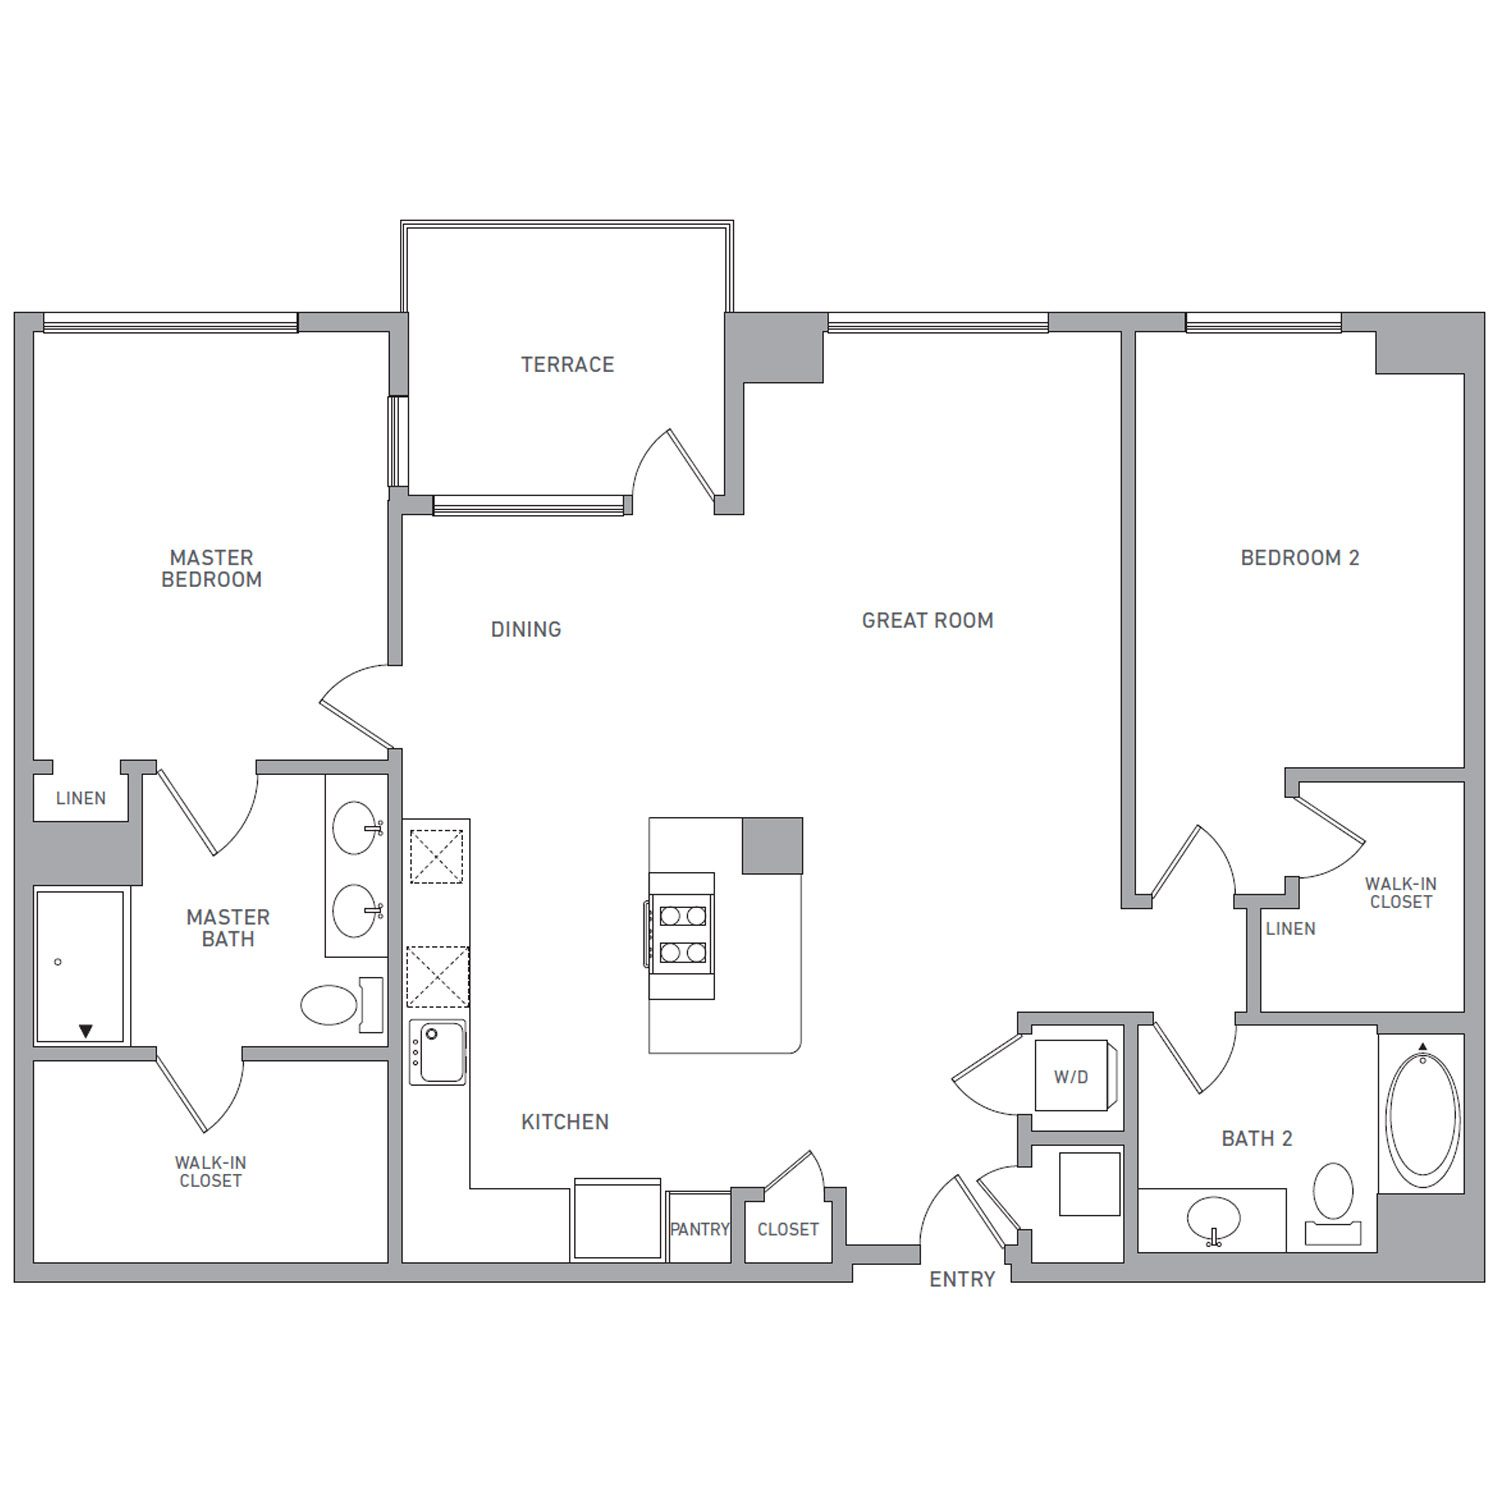 P H 204 floor plan diagram. Penthouse apartment with two bedrooms, two bathrooms, an open kitchen dining and living area, a terrace, and a washer dryer.